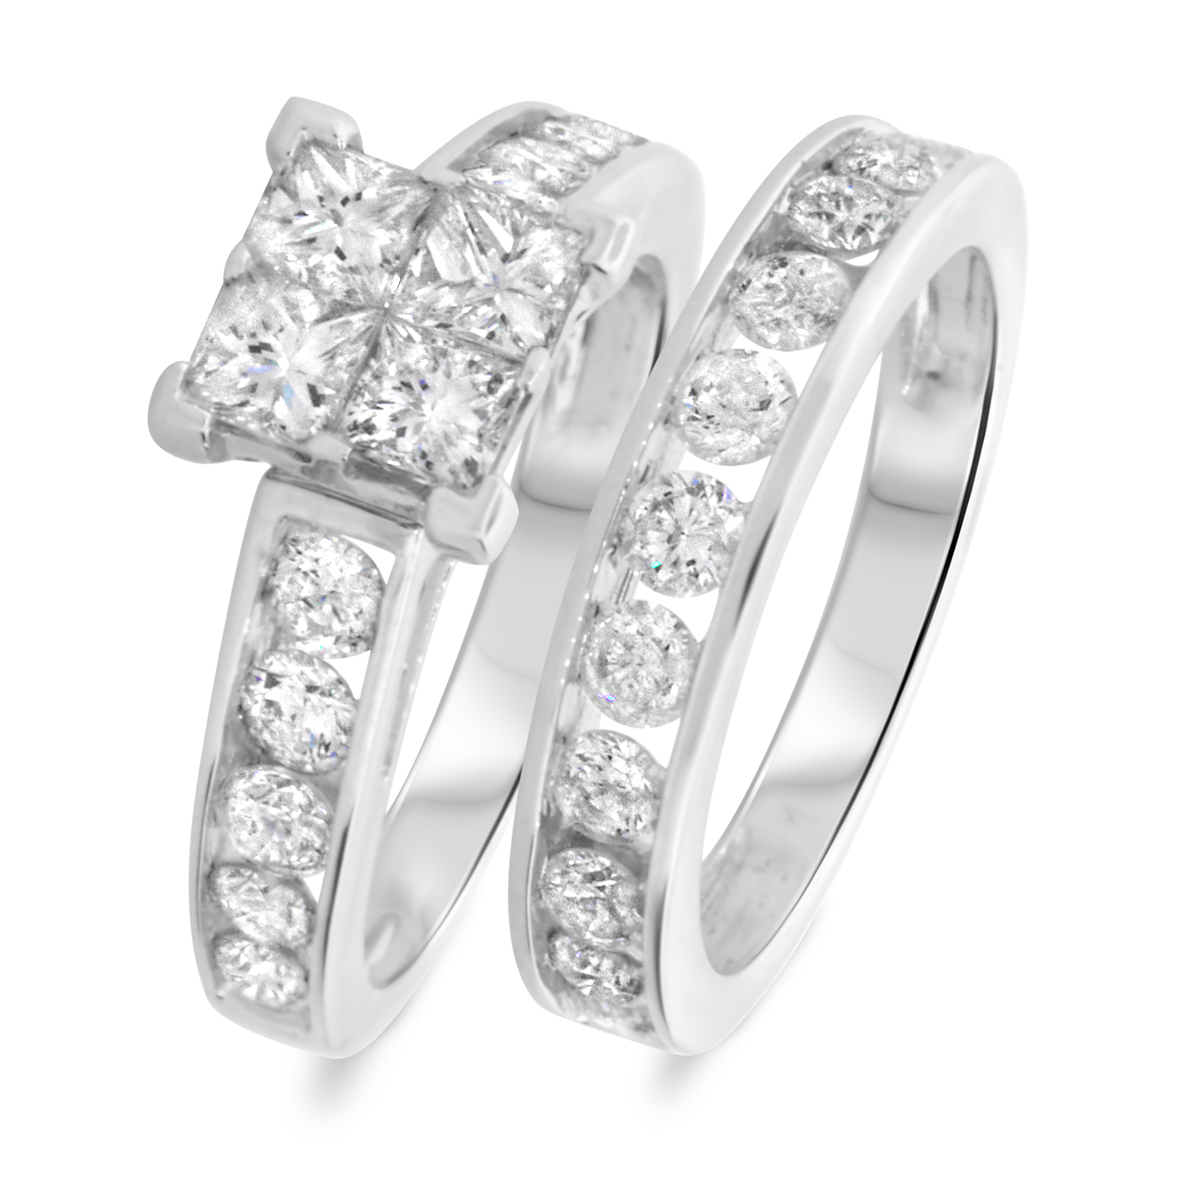 3 CT. T.W. Princess, Round Cut Diamond Ladies Bridal Wedding Ring Set 14K White Gold